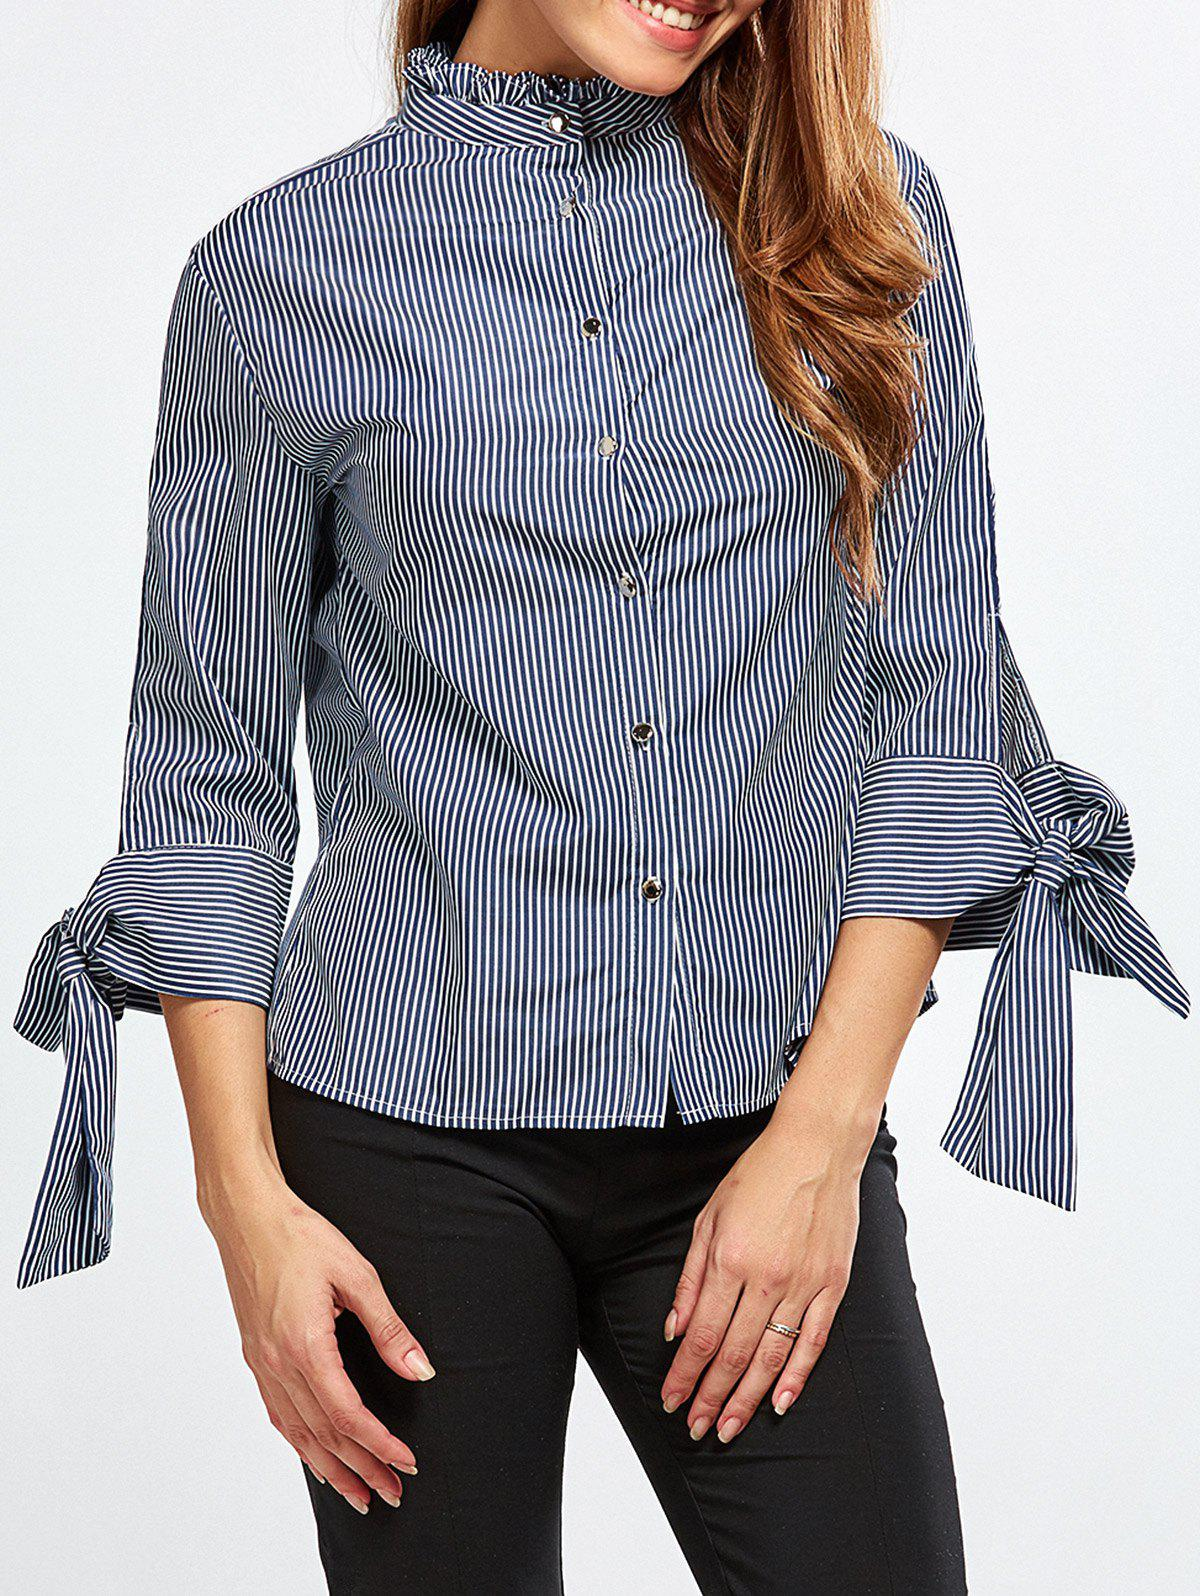 Stand Neck Striped Back Buttons BlouseWomen<br><br><br>Size: S<br>Color: BLUE AND WHITE